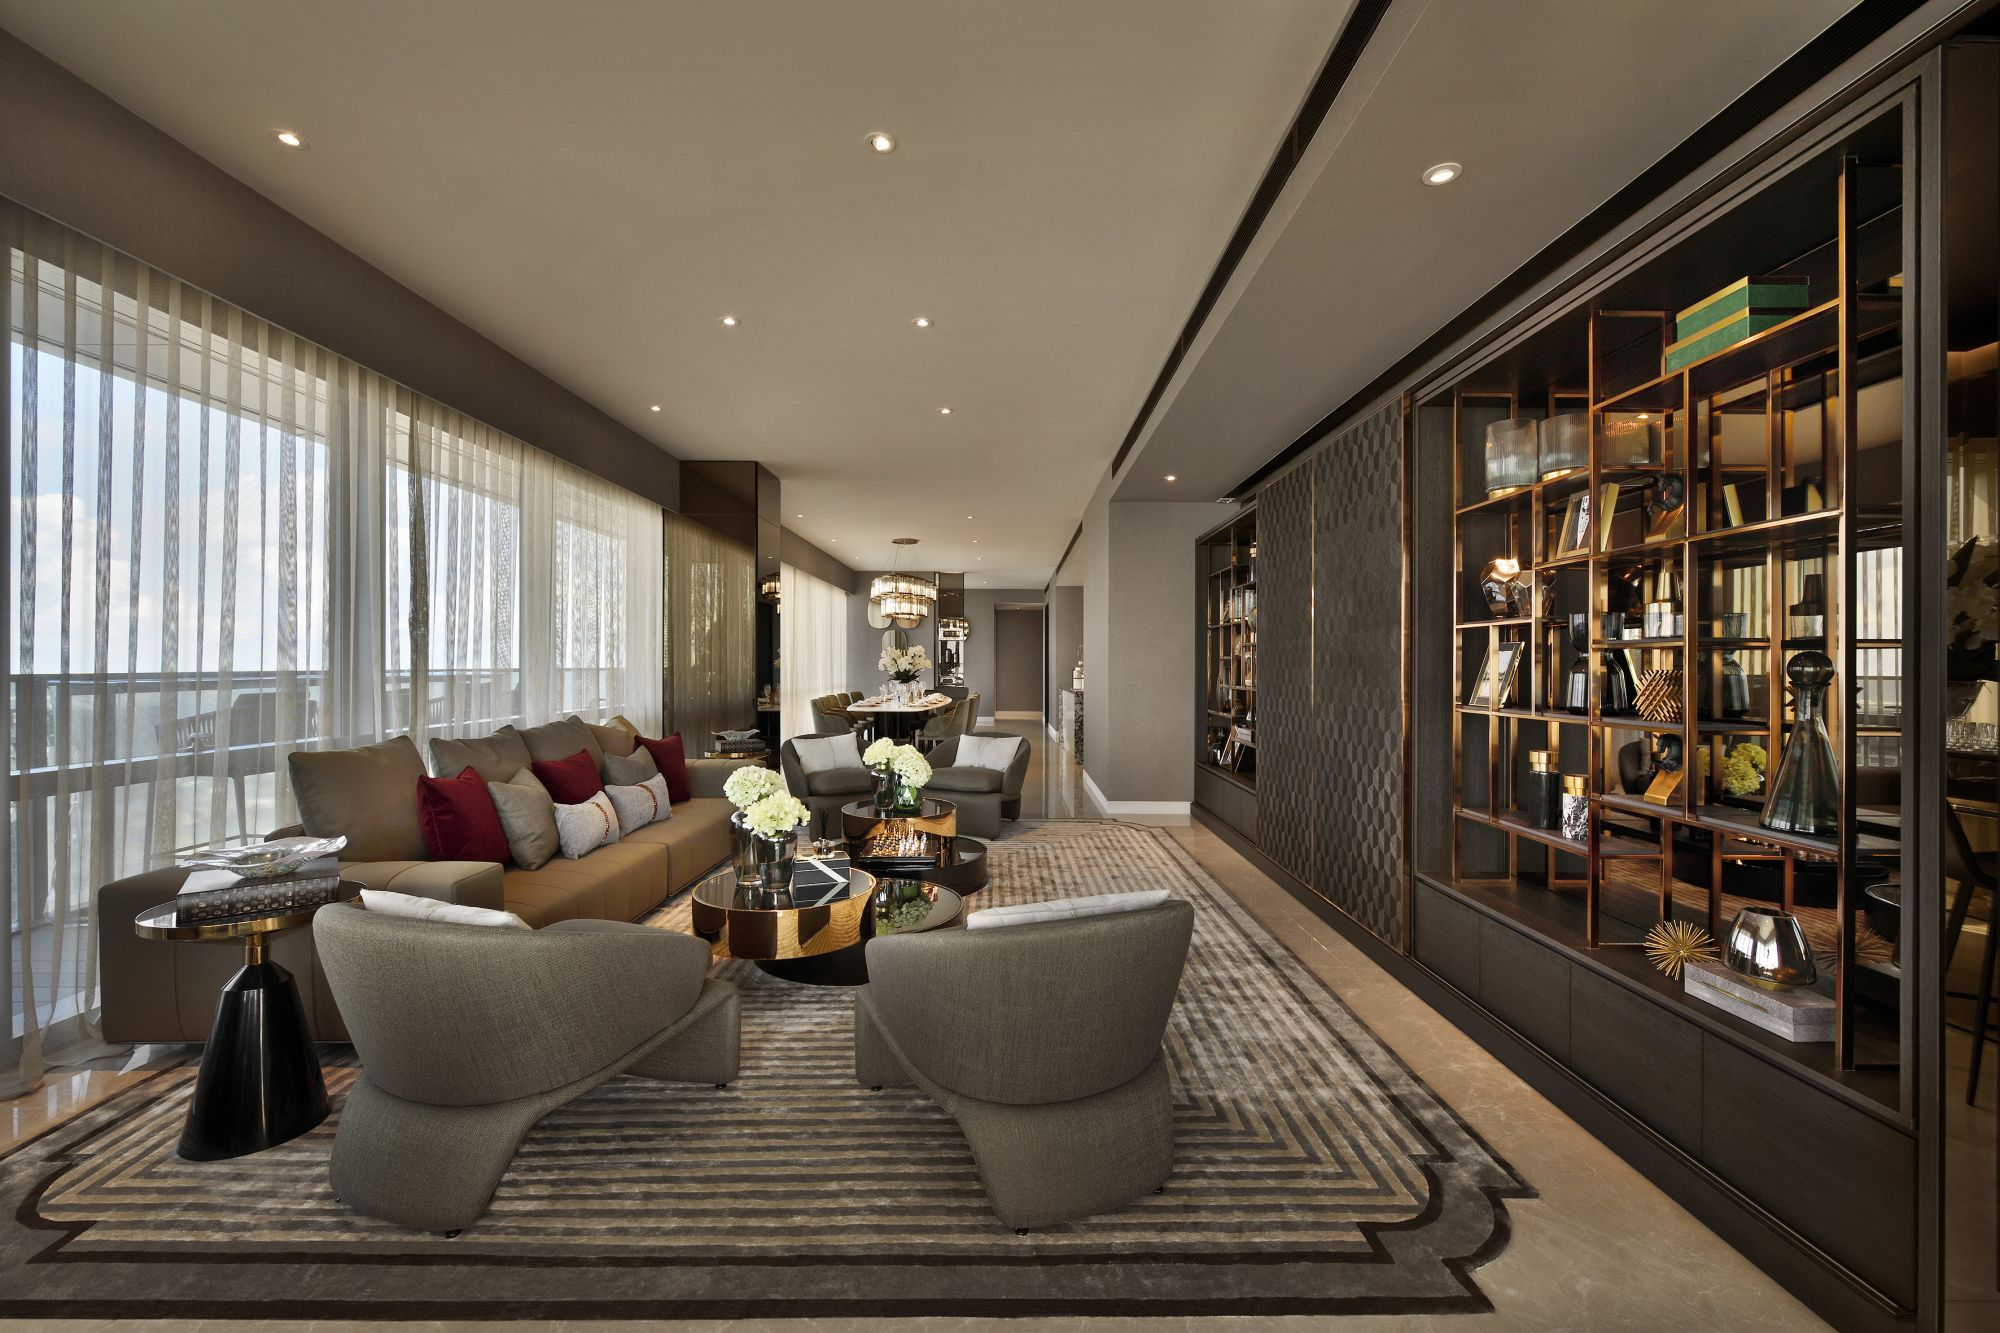 A penthouse at Wallich Residence designed by Evocateurs (formerly known as The ID Dept). Image: GuocoLand